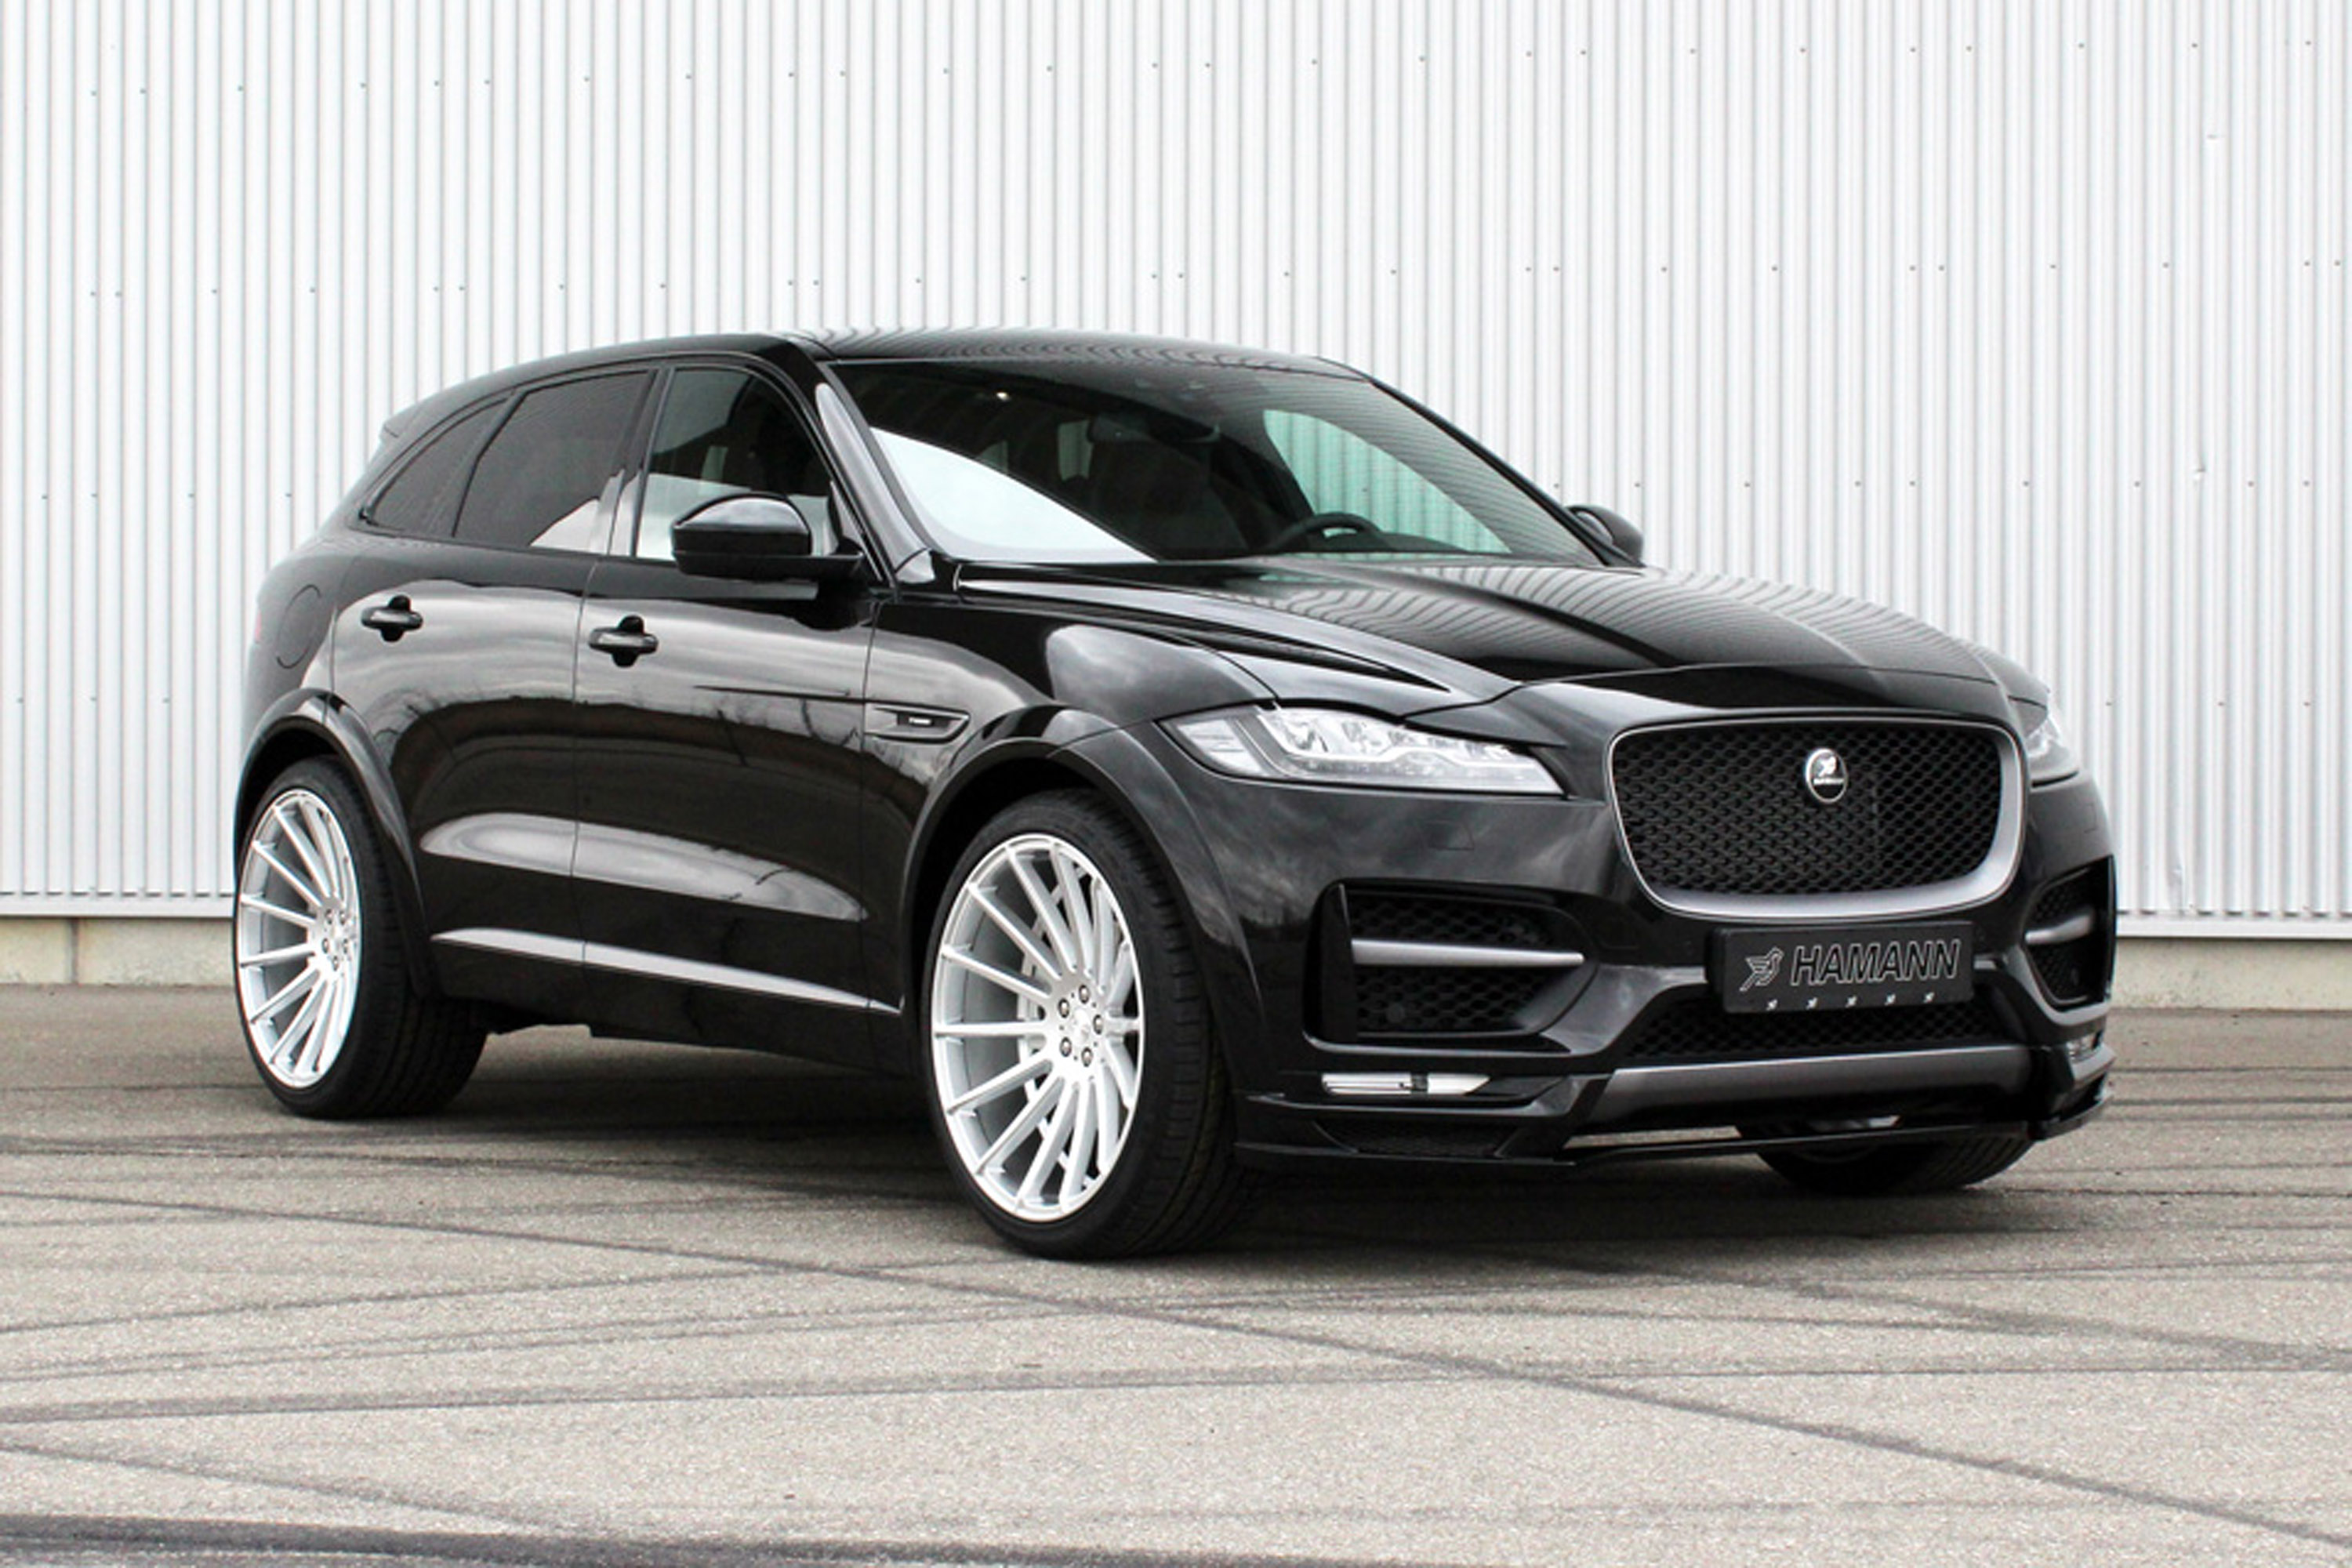 2018 Jaguar F Type >> Hamann team reveals a tweaked Jaguar F-Pace SUV